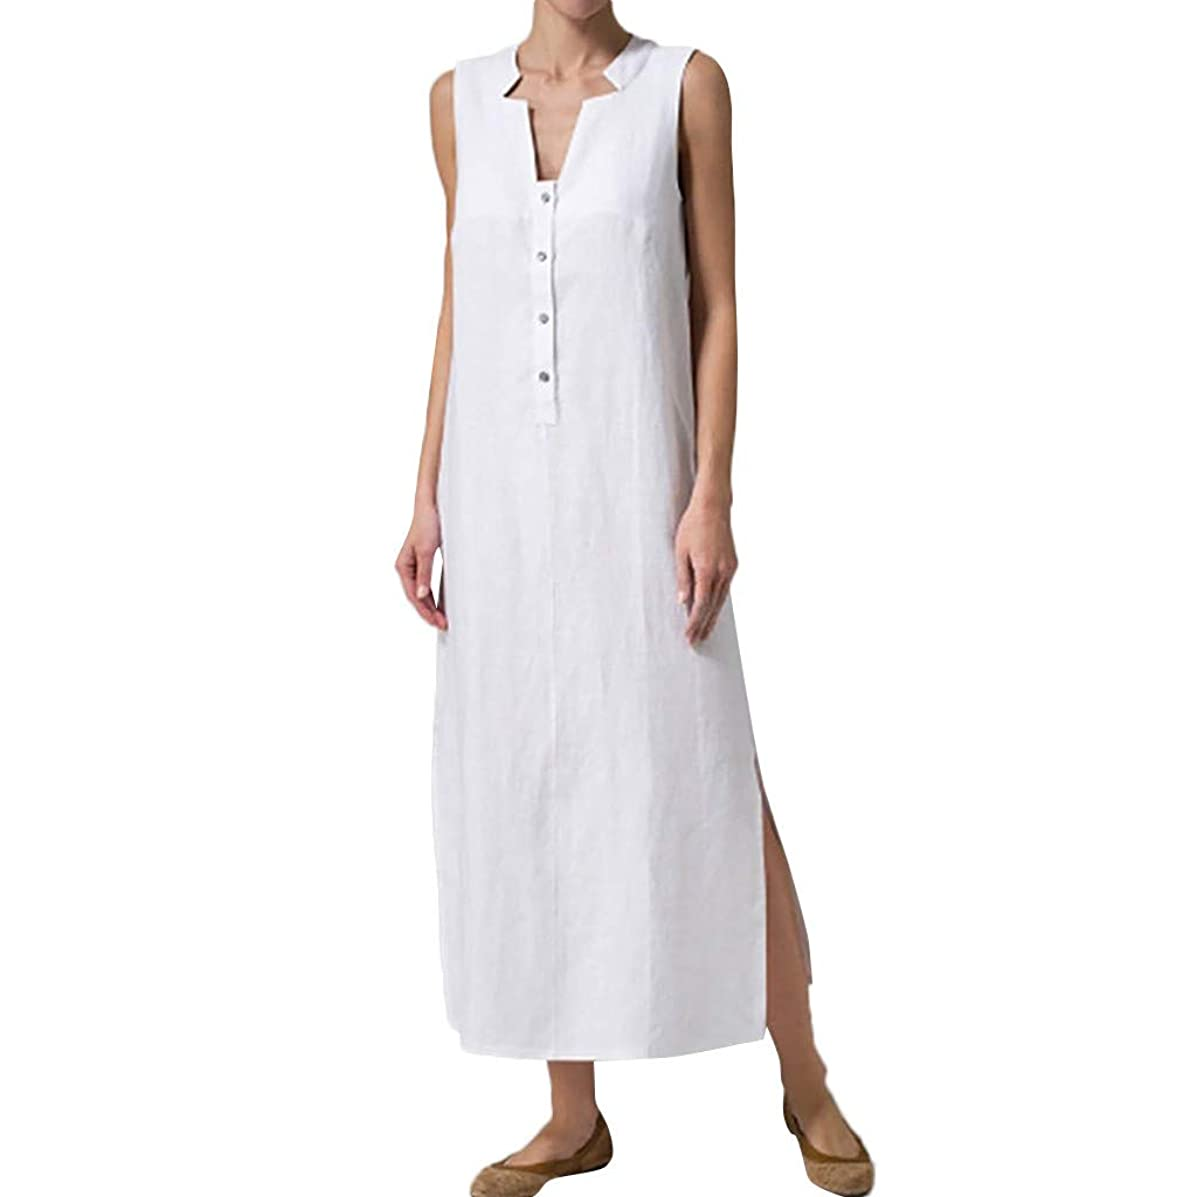 SAYEI Women Summer Sleeveless Button Solid Sundress Casual Linen Maxi Comfort Long Dress